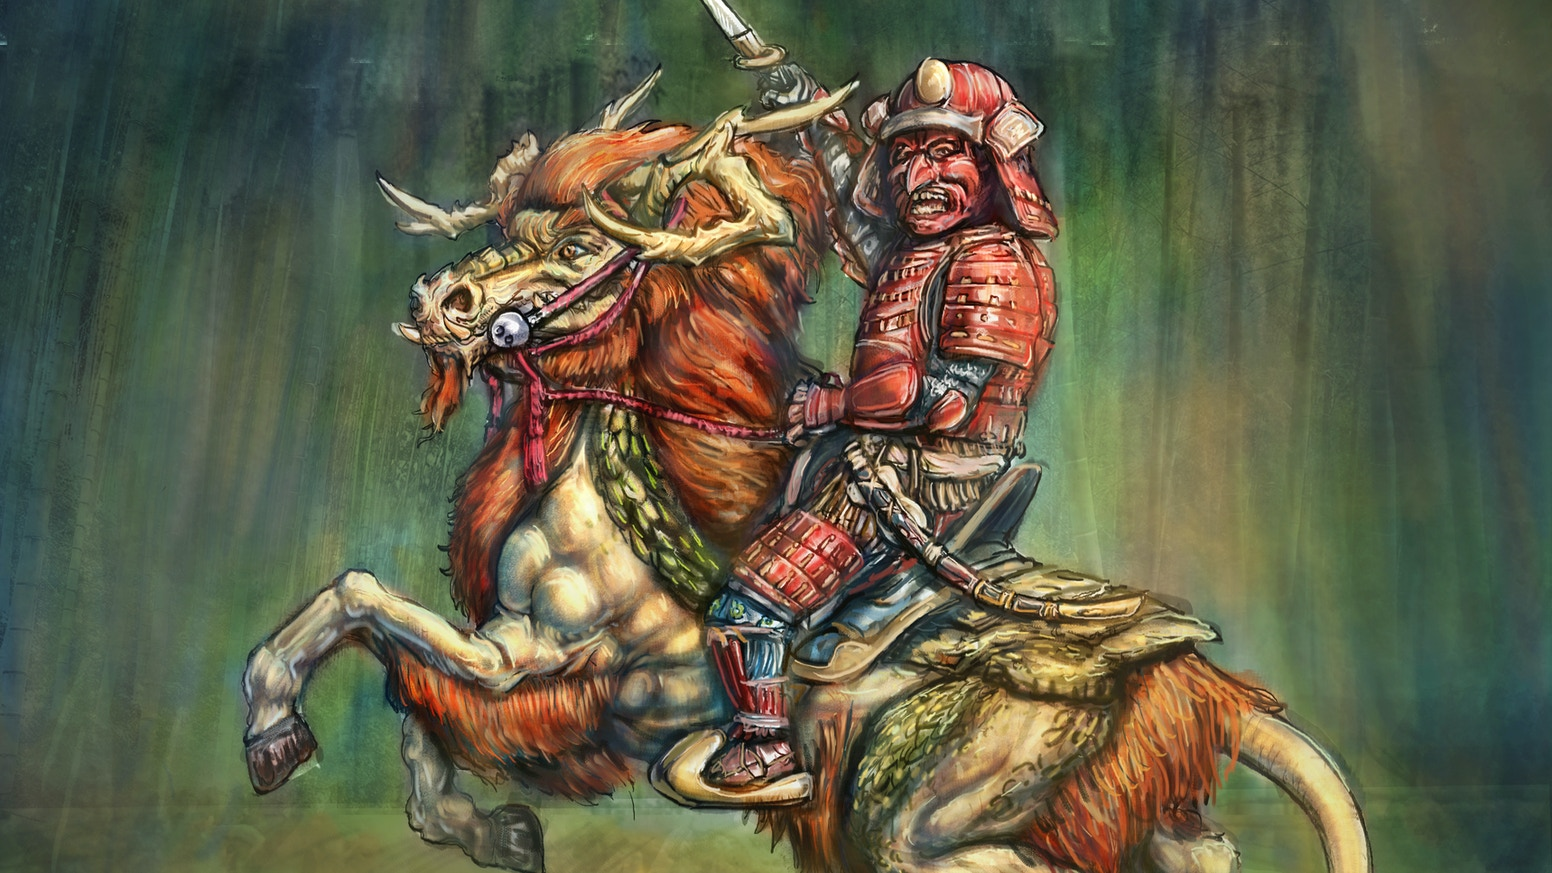 Following the success and fulfilment of our previous Samurai Dwarf project we are adding some cavalry to the mix.